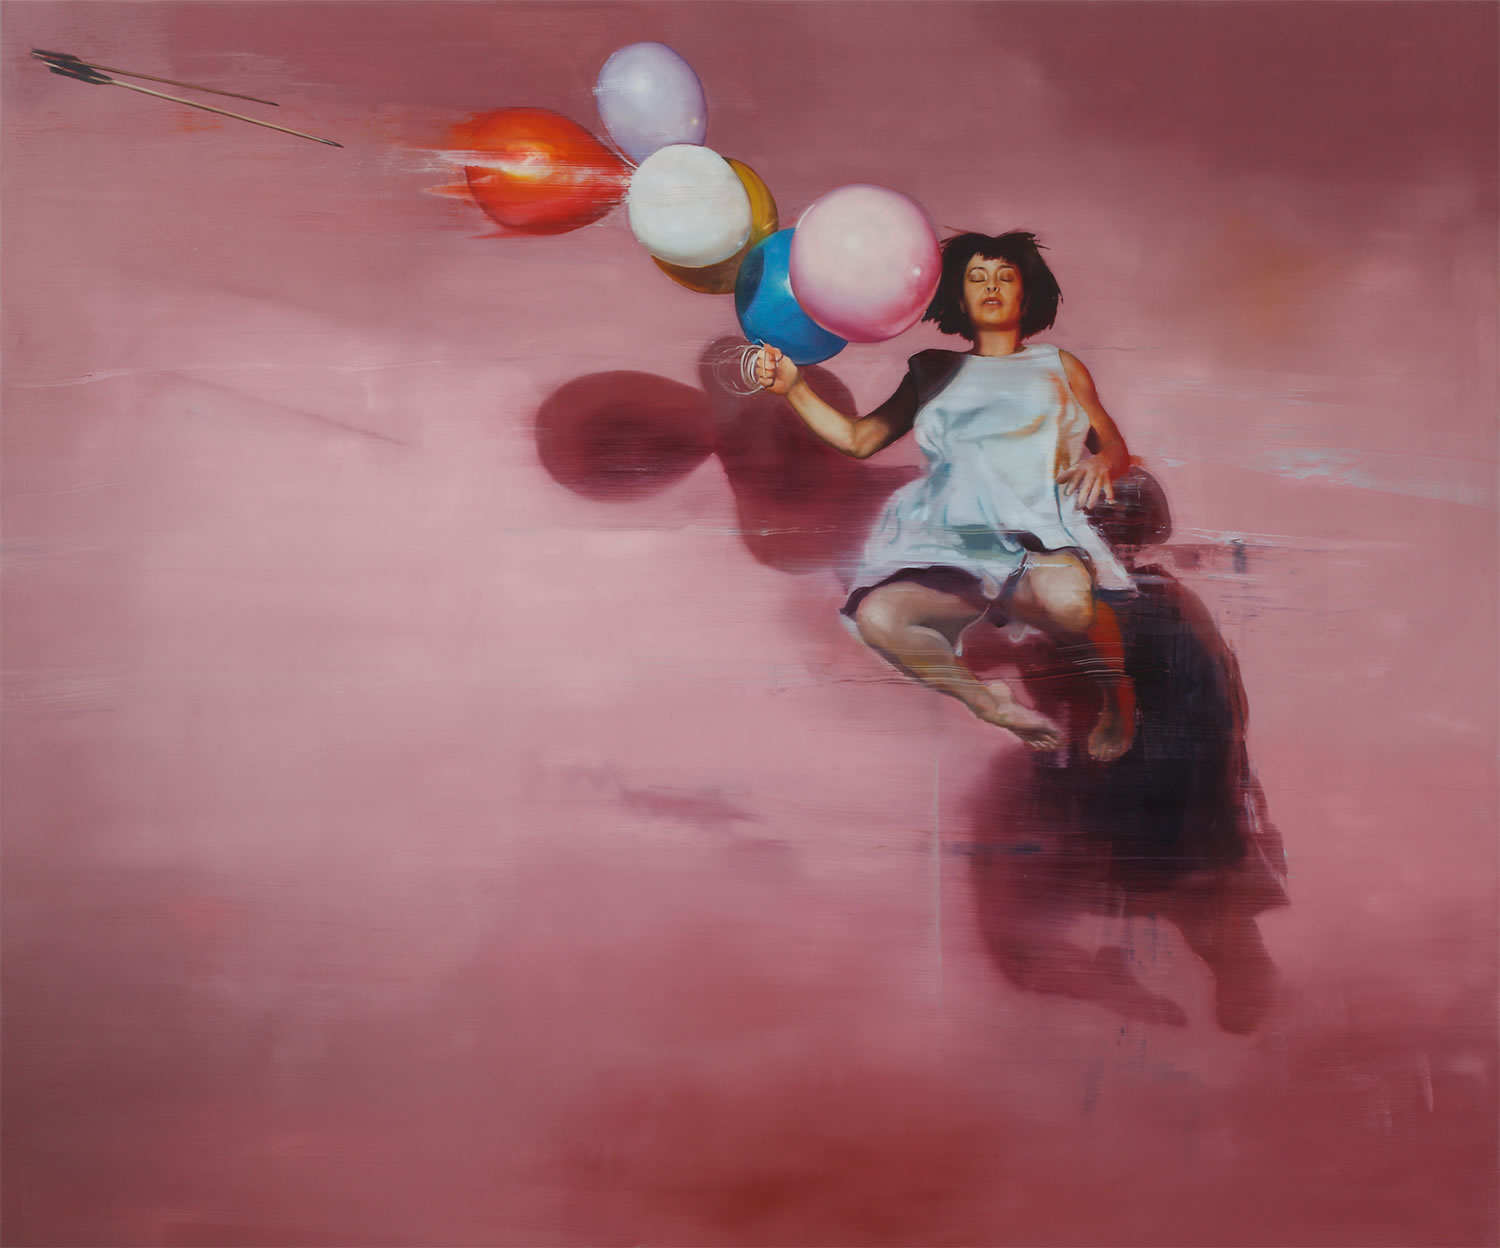 woman jumping up with balloons in hand, oil painting by chloe early